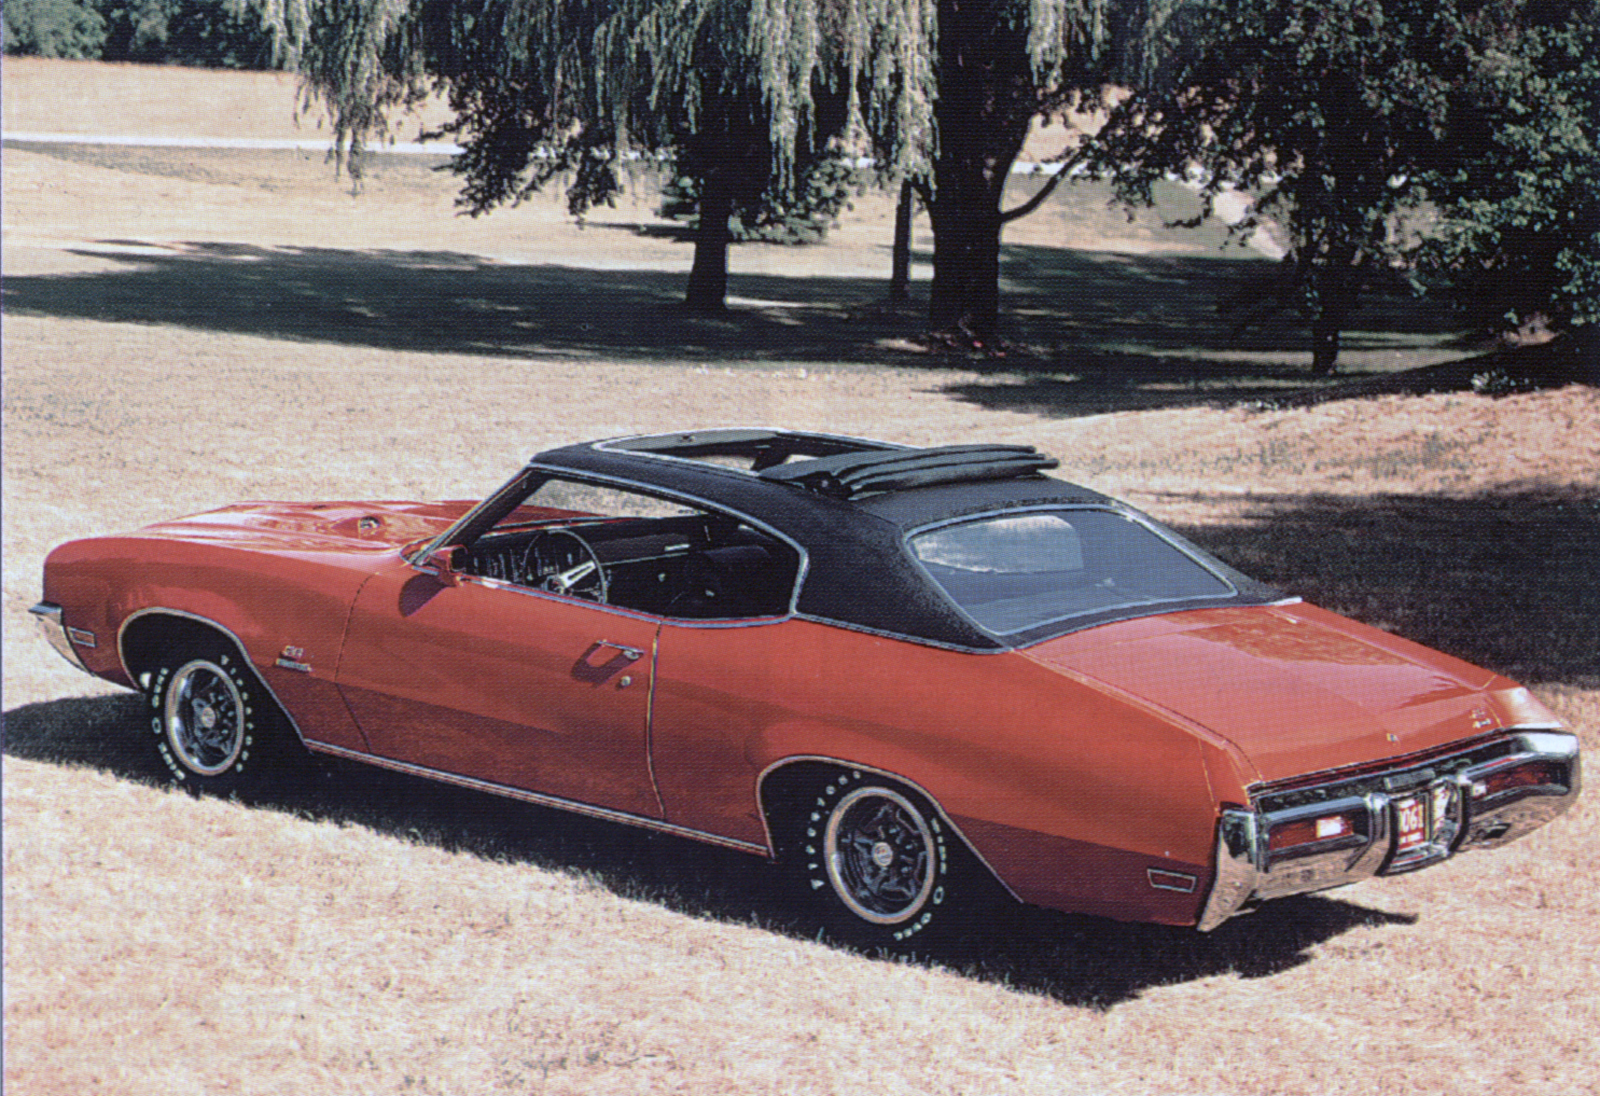 1972 Buick Skylark Gs And Stage 1 Cars Phscollectorcarworld Wiring Diagram There Were New Surprises For Buyers In A One Year Only Deal Called The Sun Coupe Appeared Farmed Out Conversion By American